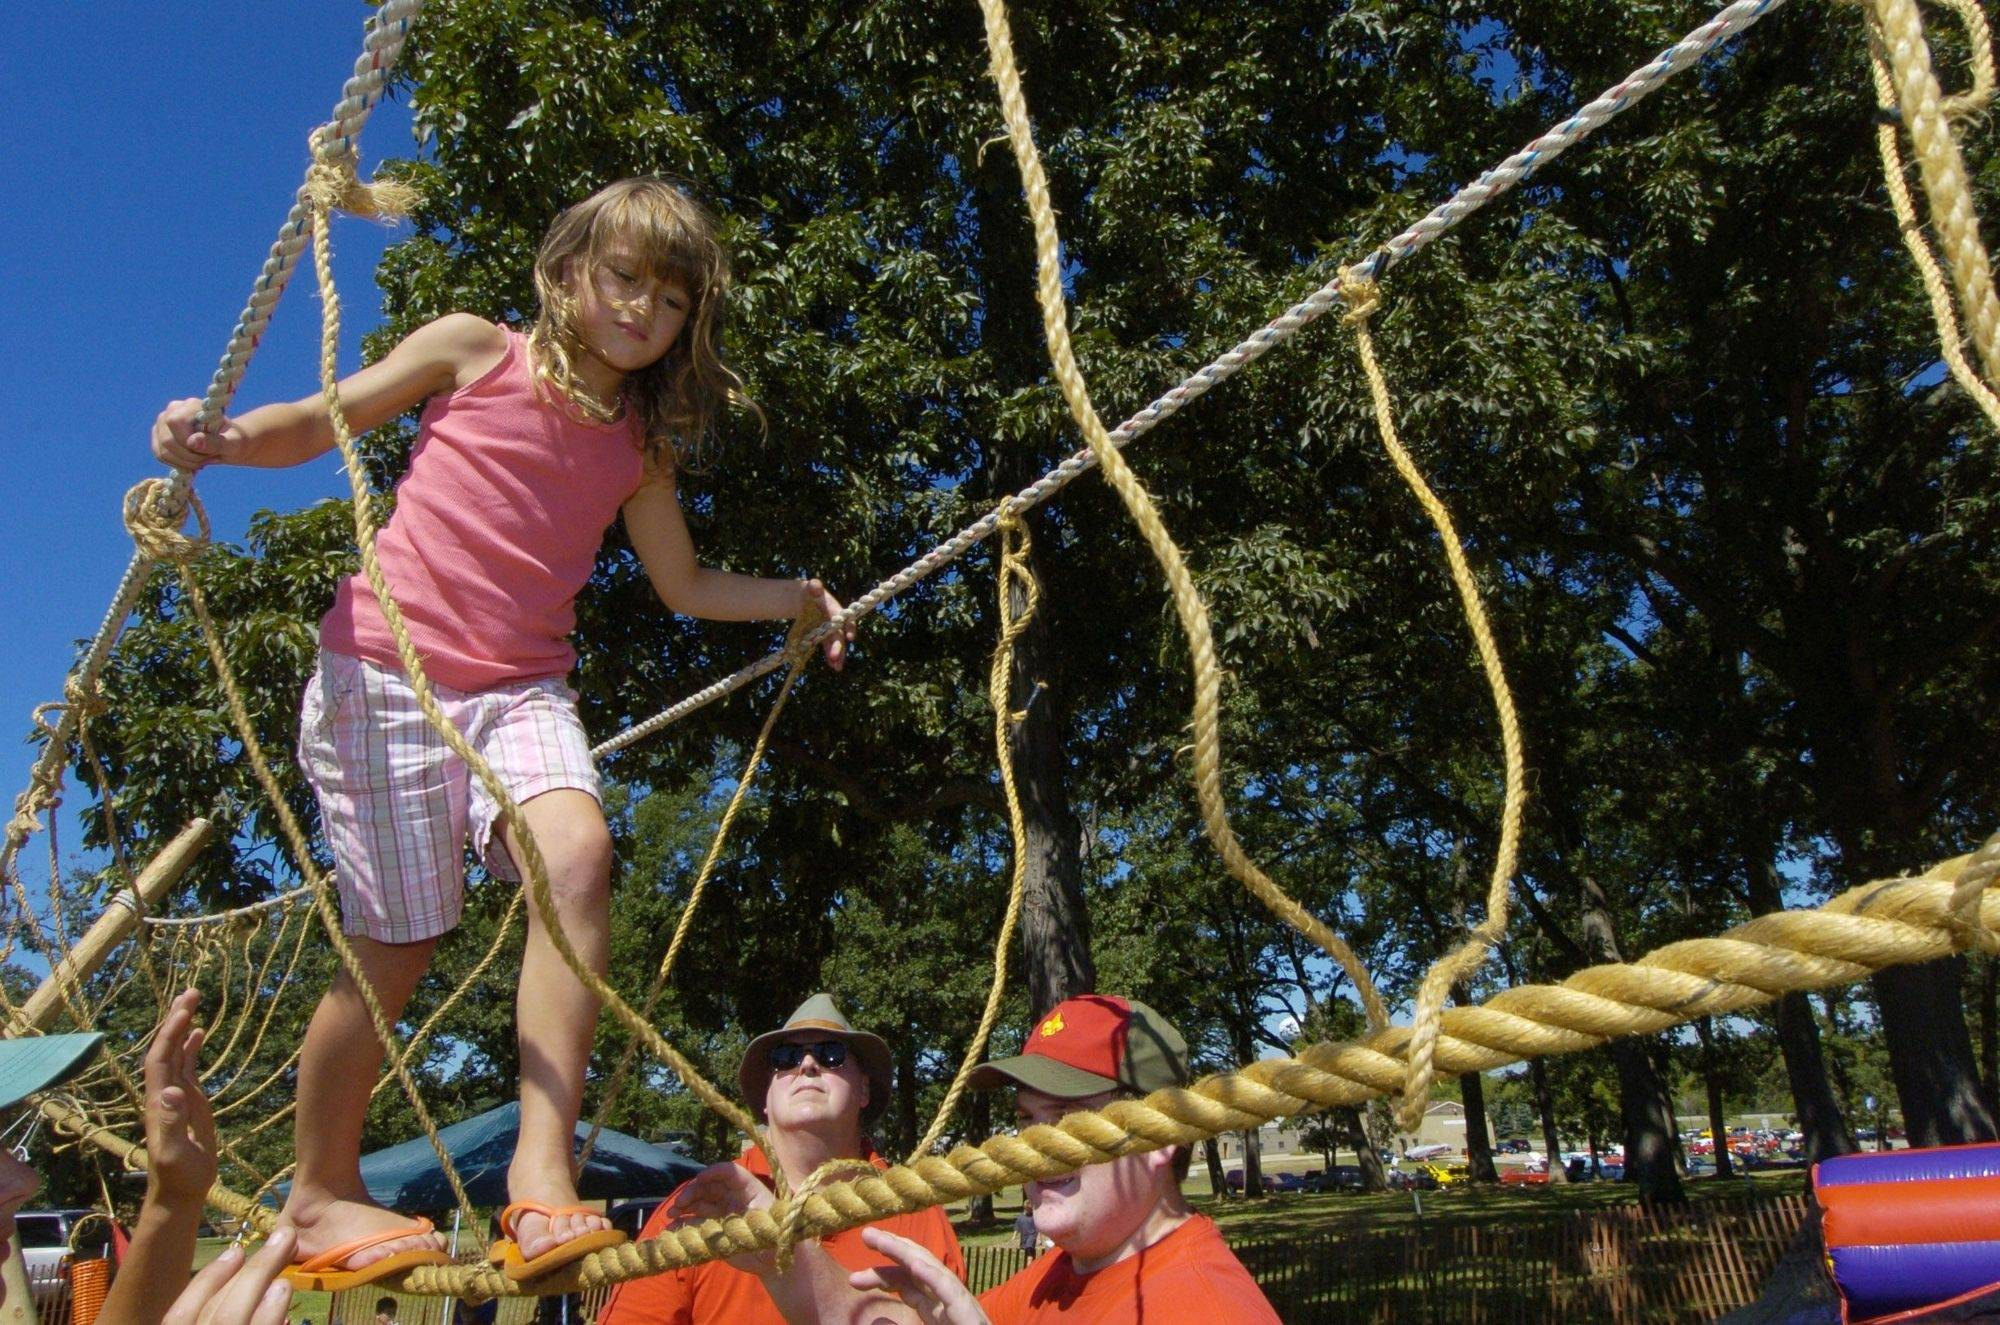 Rachel Gazdzicki, 6, of Round Lake makes her way across the Boy Scout Troop 275 monkey bridge during the Round Lake Hometown Fest Saturday.